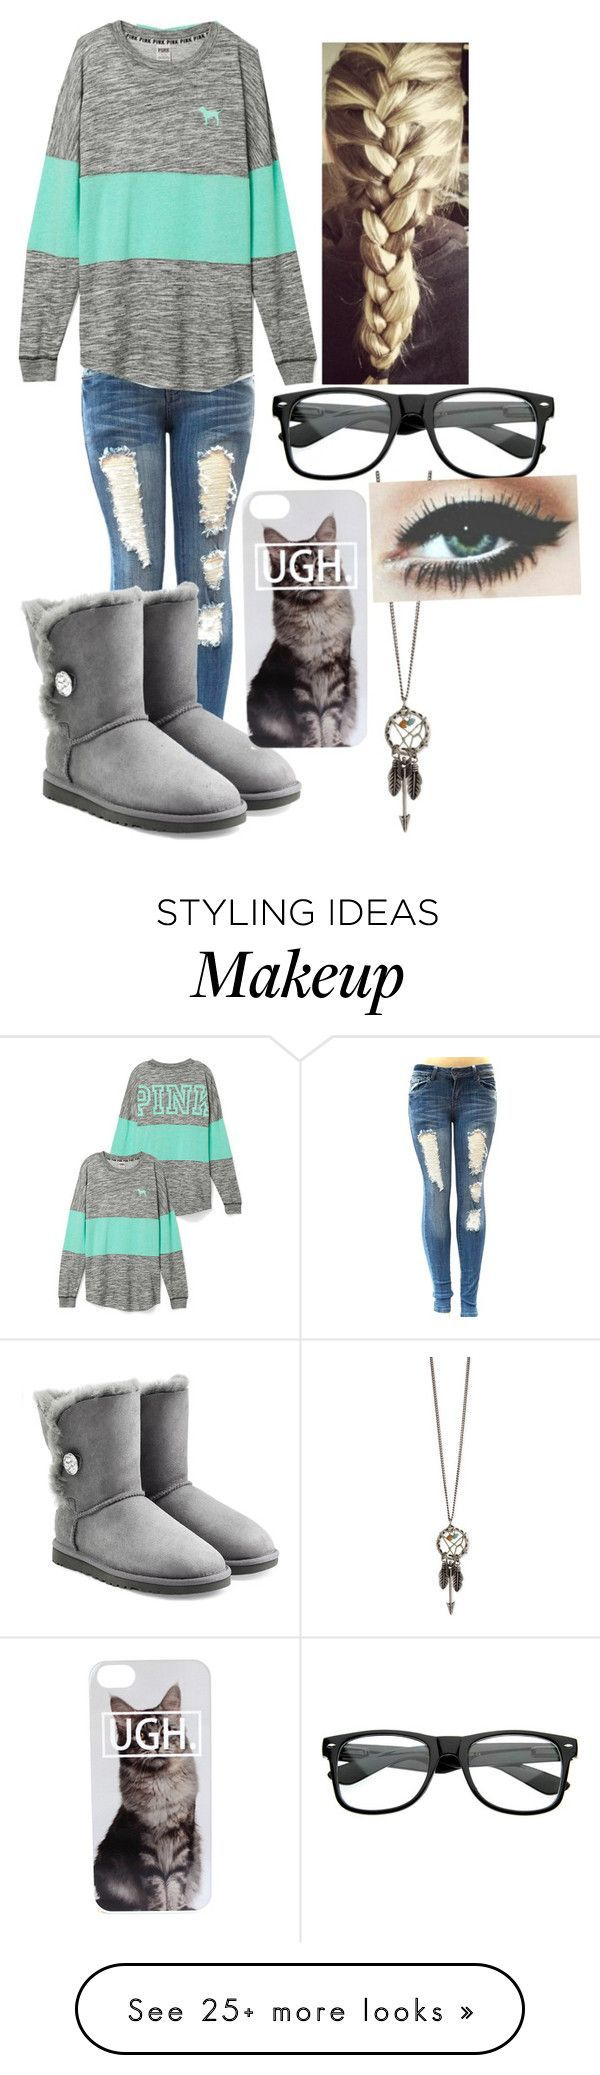 """Lazy dayz"" by alyssamar on Polyvore featuring UGG Australia"